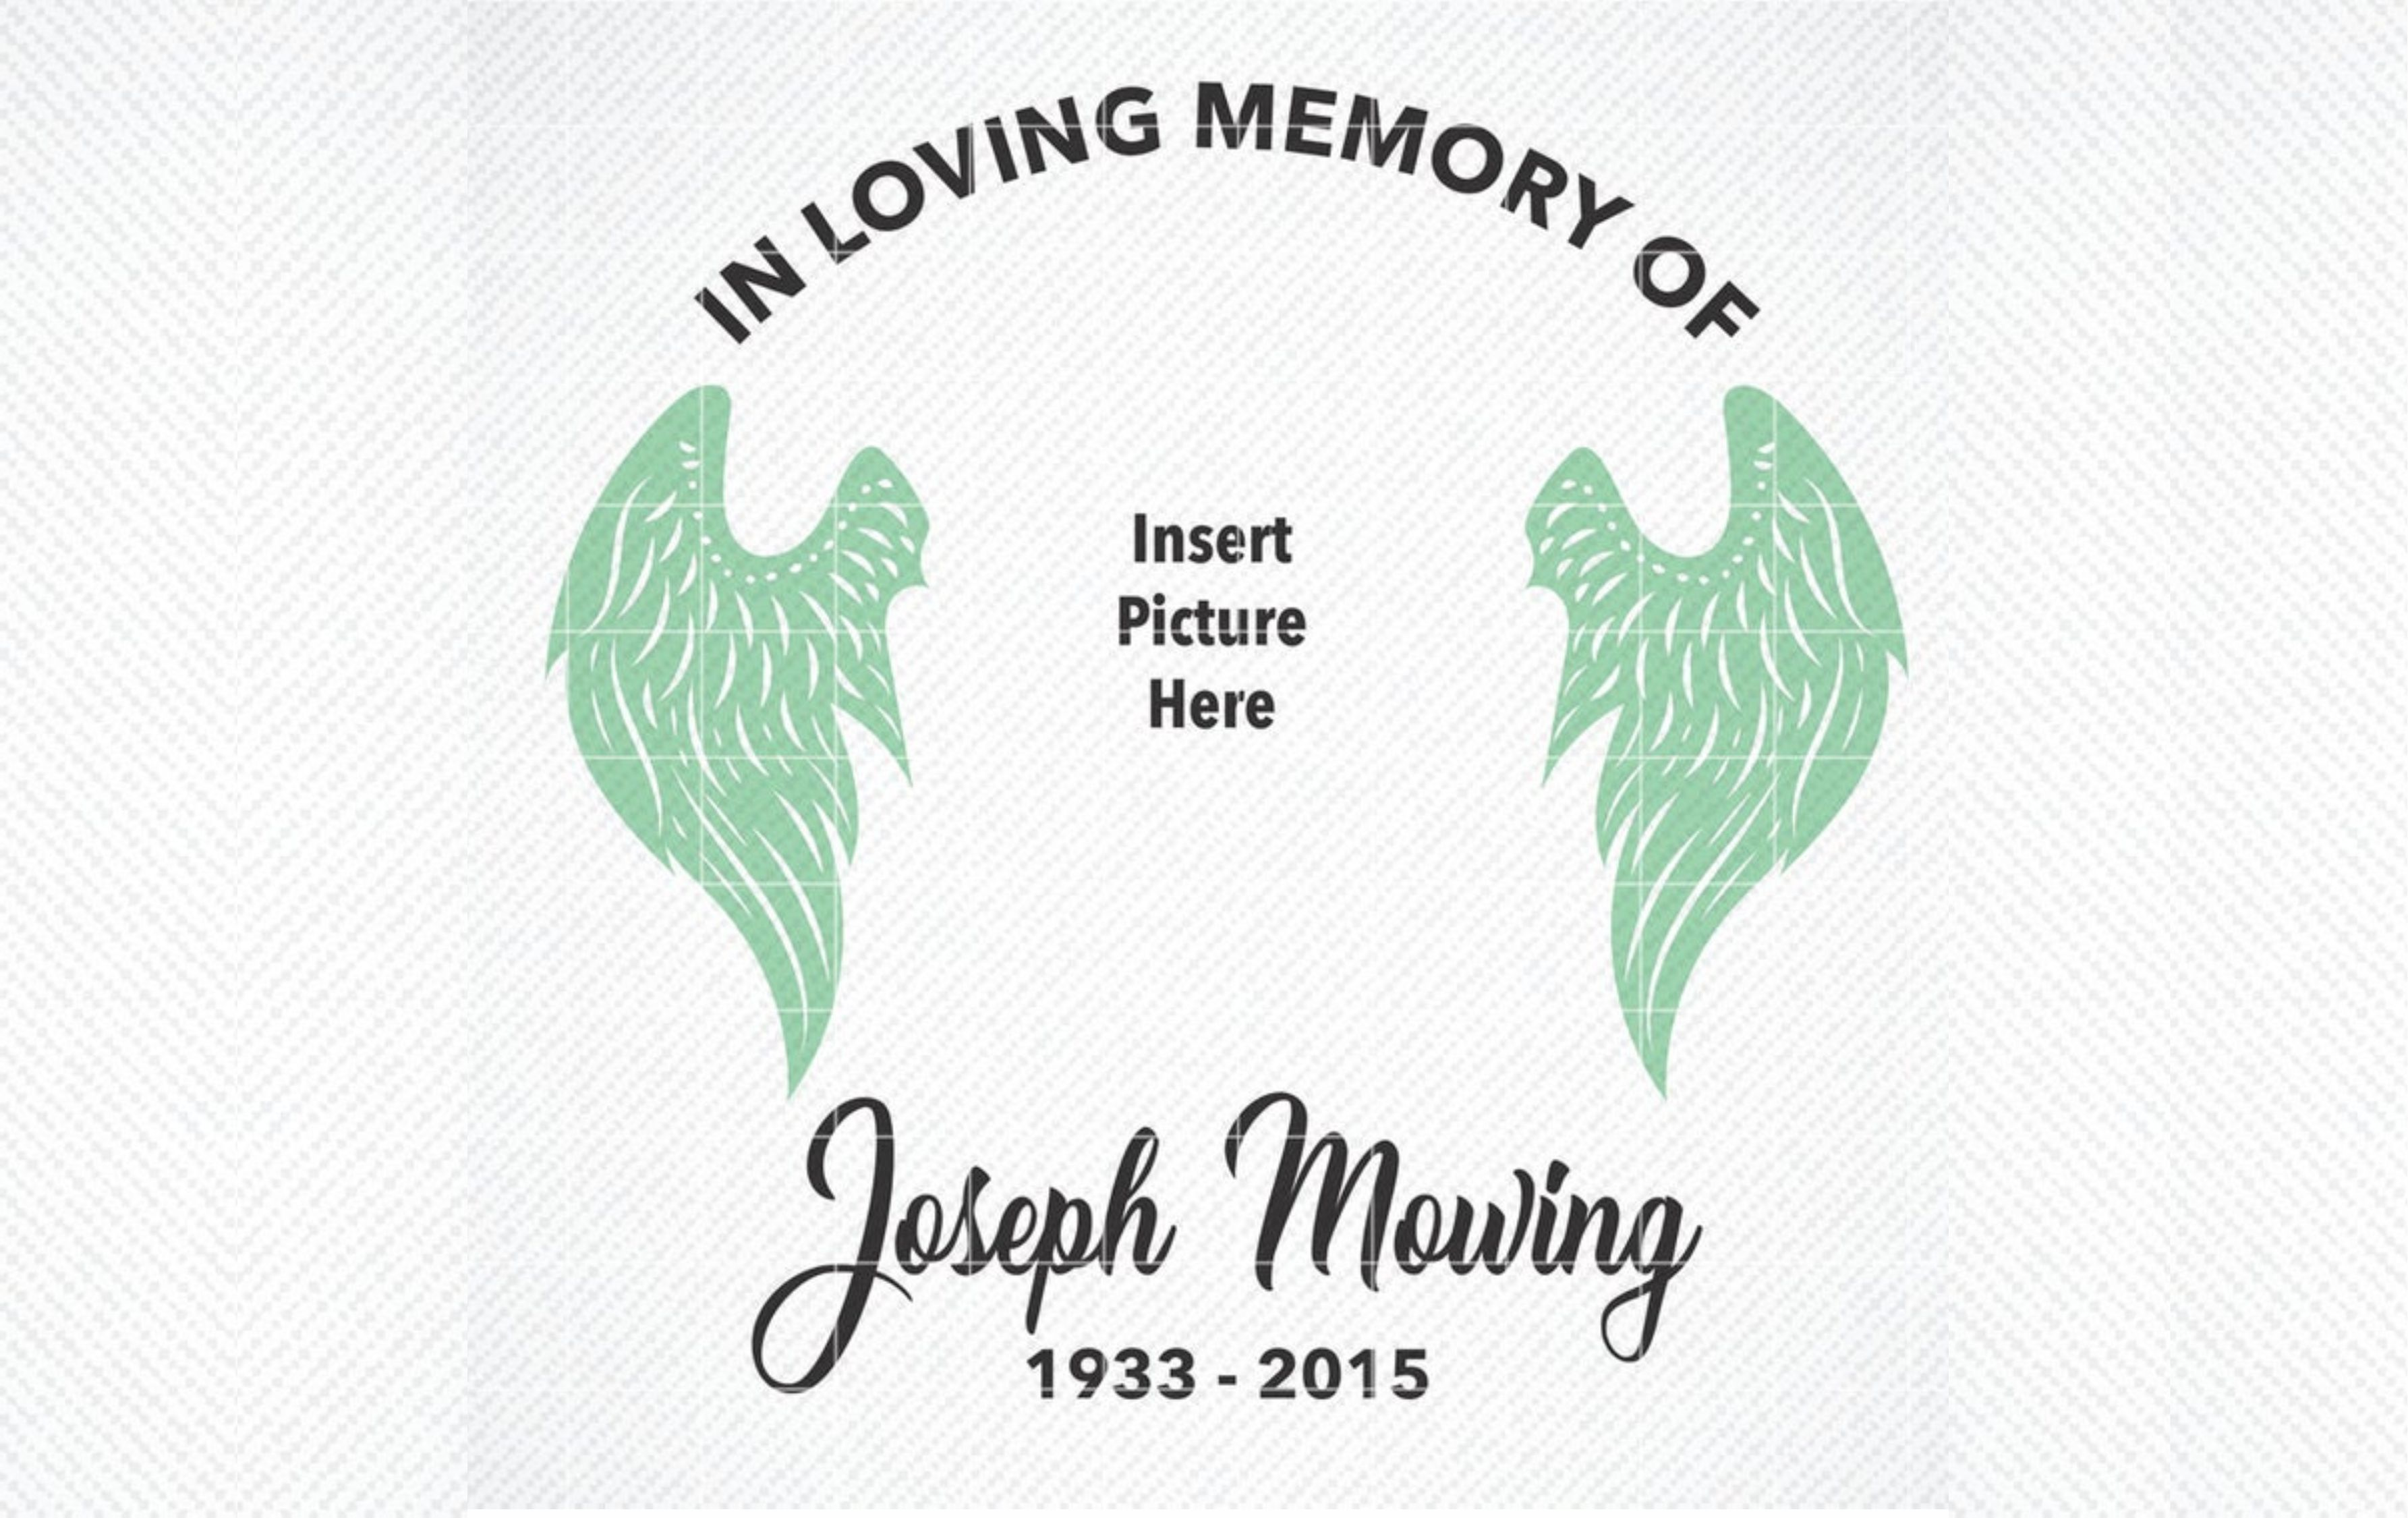 In Loving Memory Graphic Graphic By Svg Den Creative Fabrica In 2020 In Loving Memory Loving Graphic